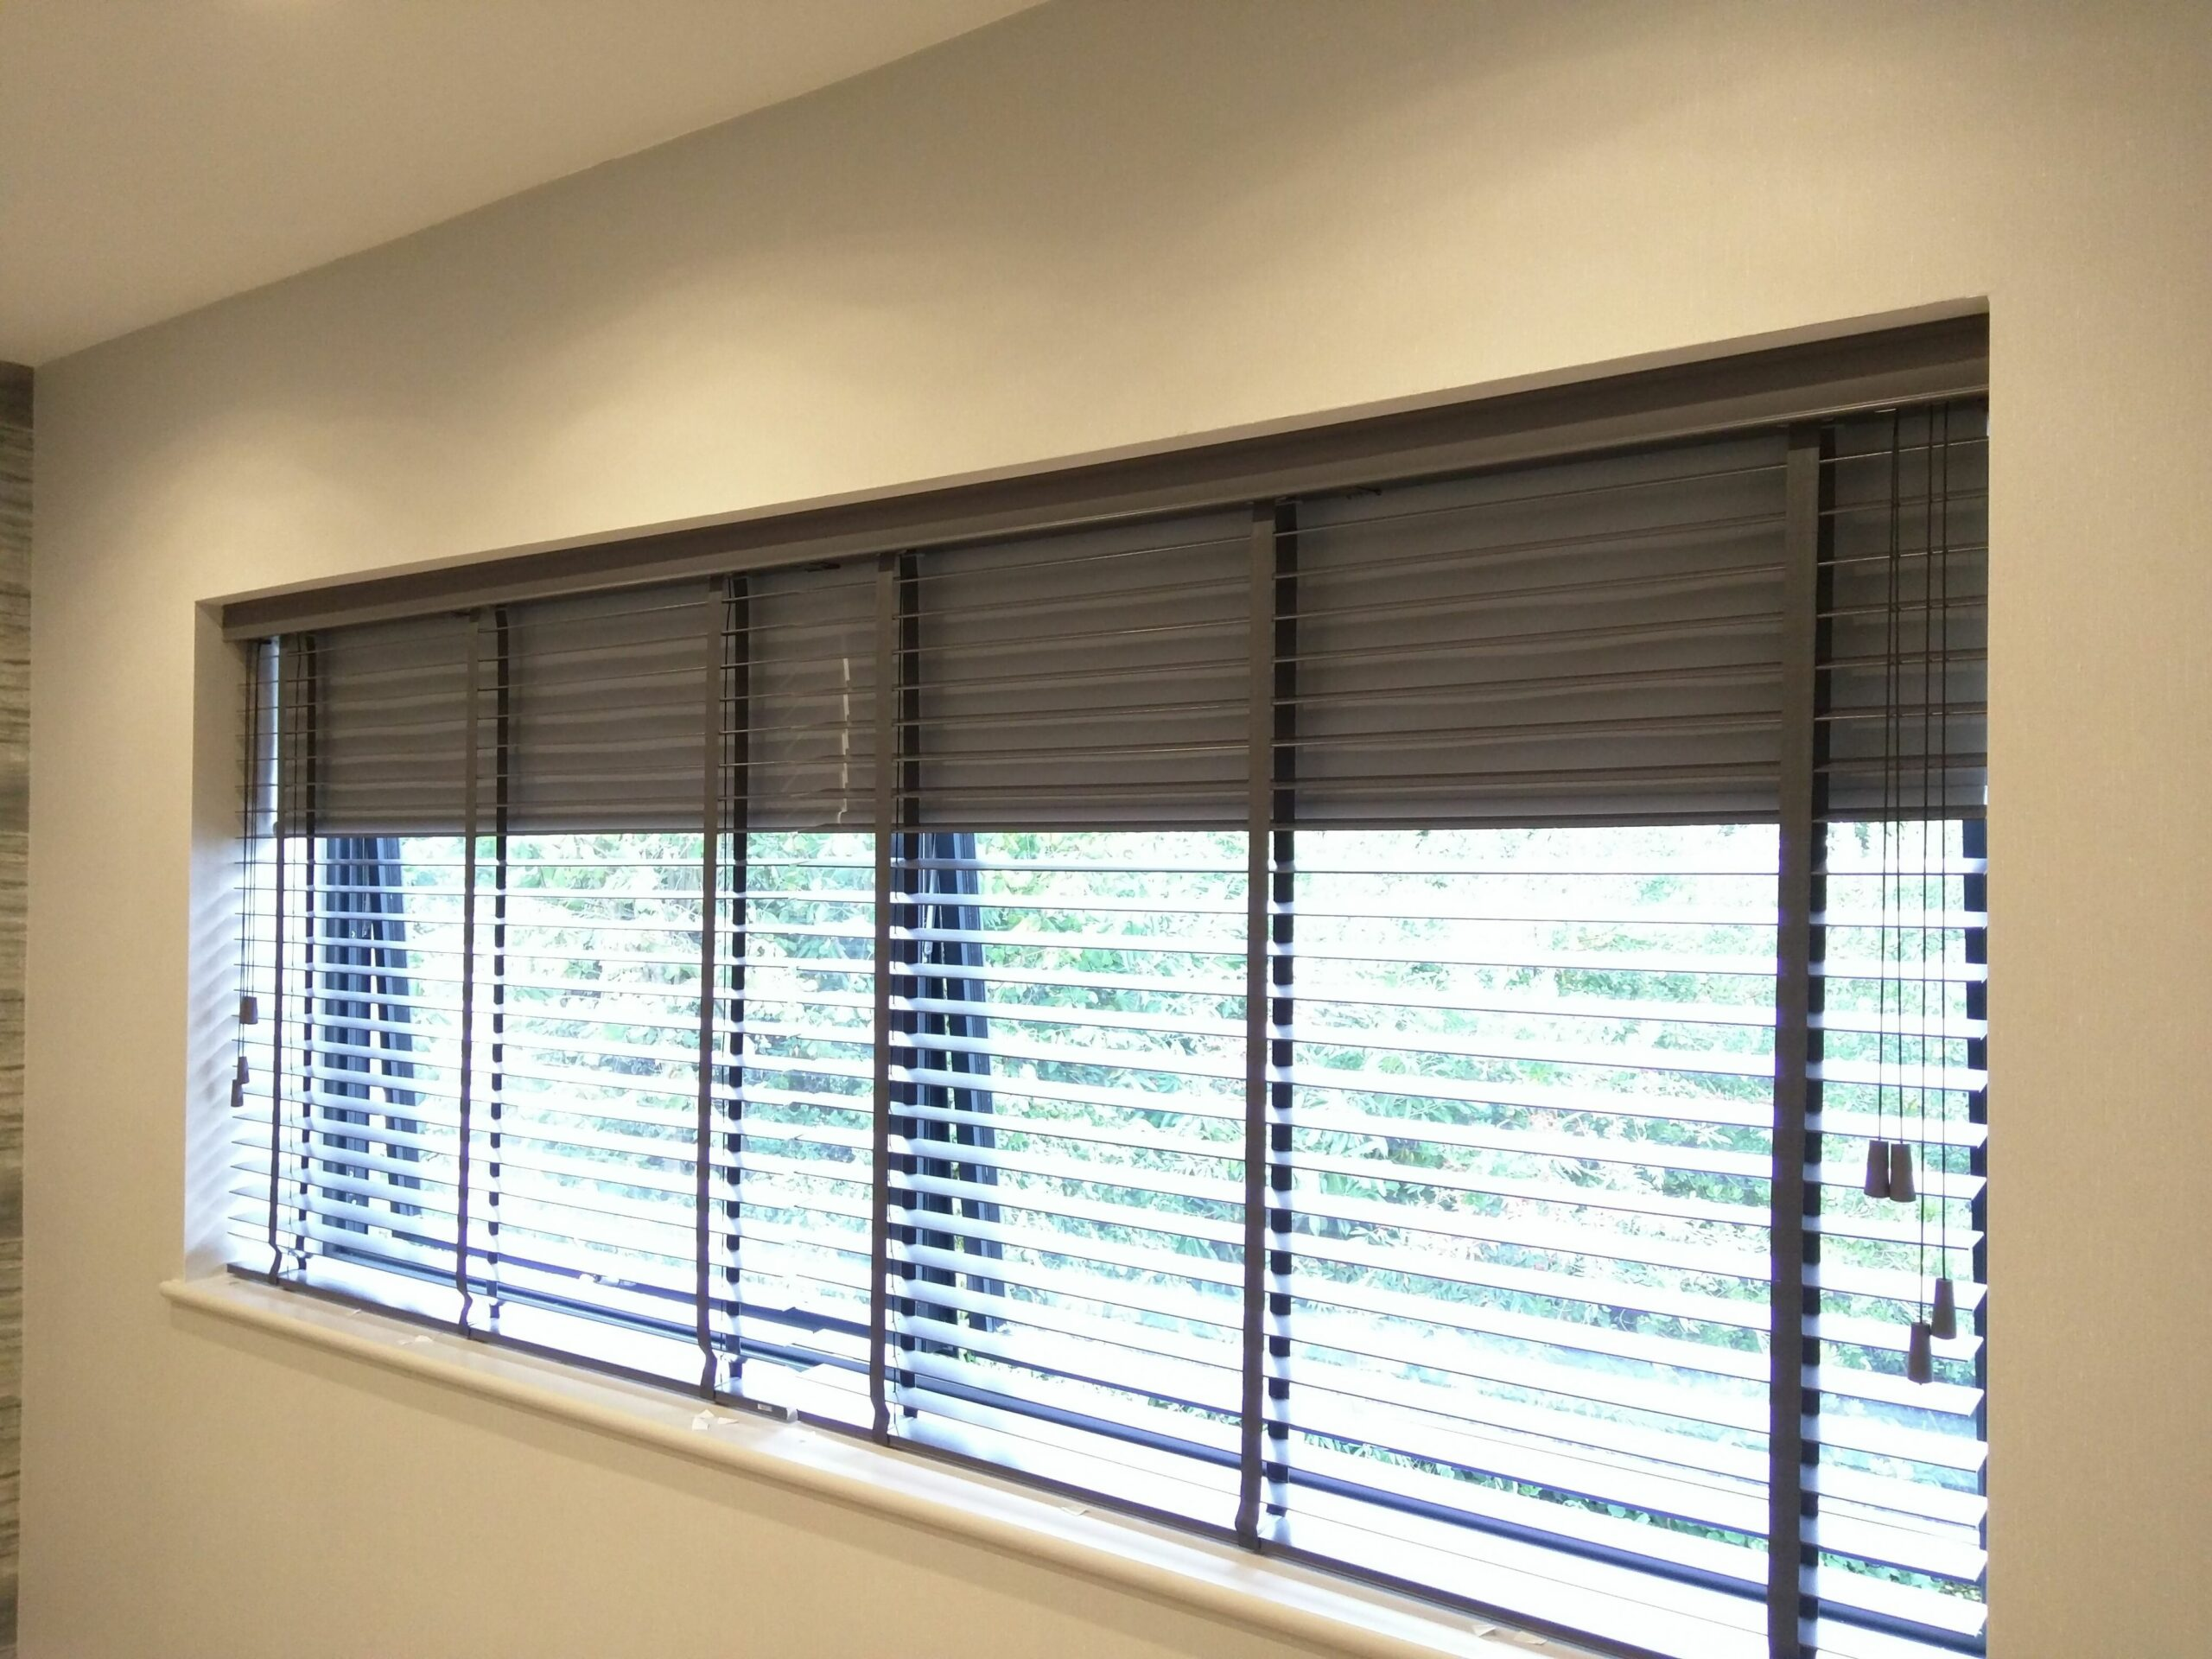 Wood venetian blind with blackout roller blind behind | Fitted to ..